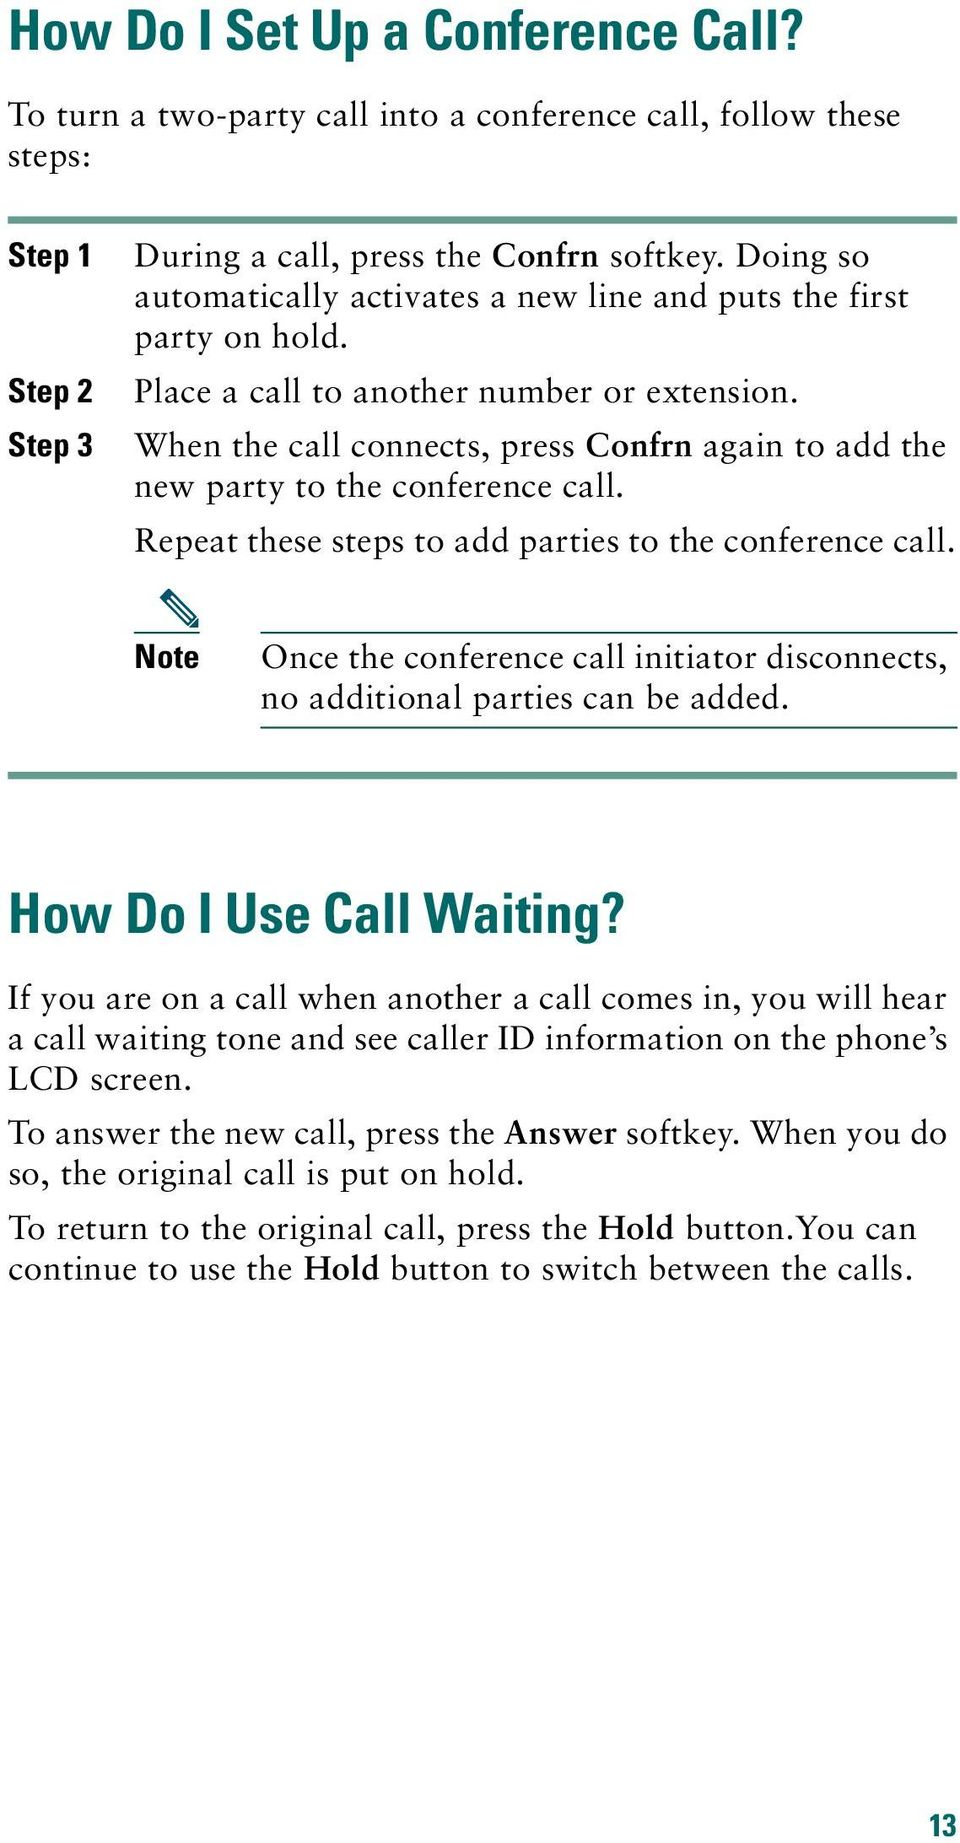 When the call connects, press Confrn again to add the new party to the conference call. Repeat these steps to add parties to the conference call.